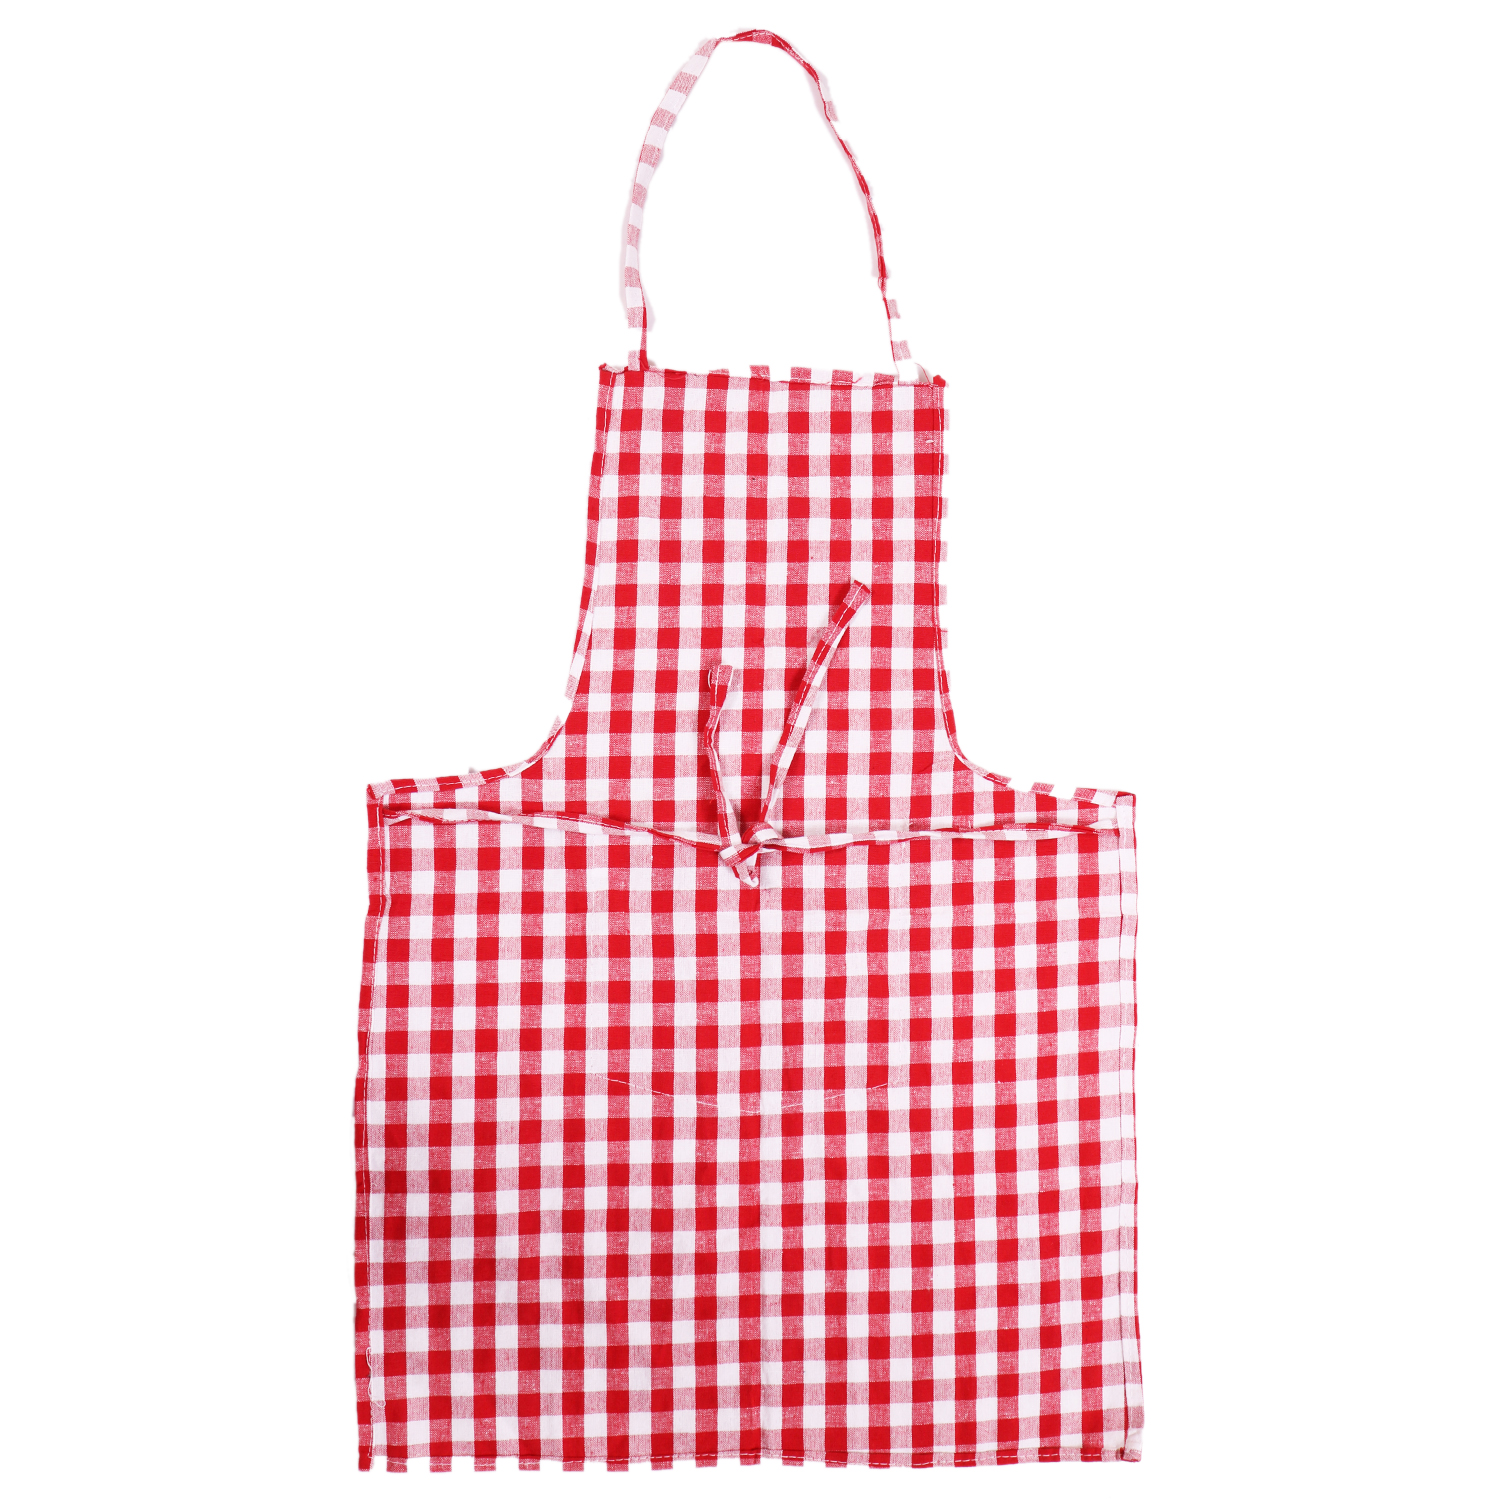 Kuber Industries Checkered Design 3 Pieces Cotton Kitchen Apron with Front Pocket (Red & White)-CTKTC32586